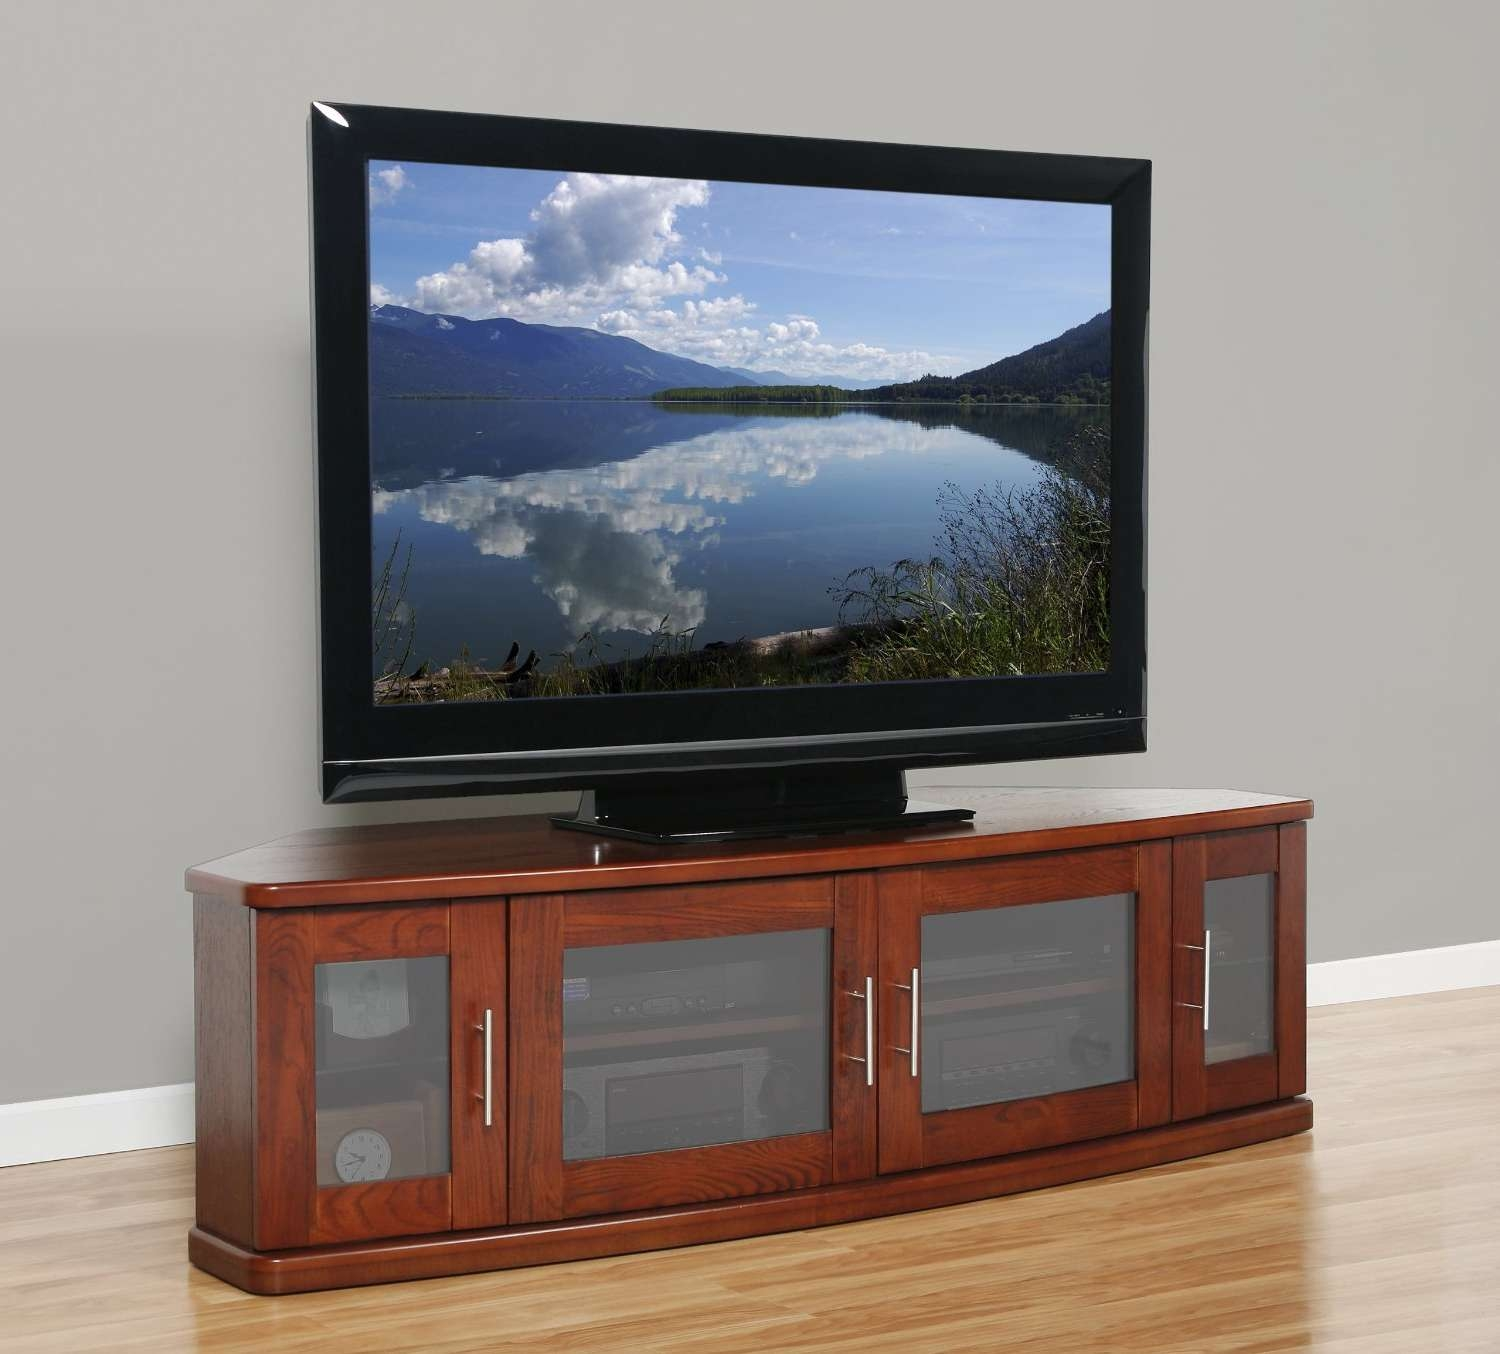 Curved Brown Figured Cherry Wood Low Cabinet For Tv Stand With 4 In Wood Tv Stands With Glass (View 15 of 15)